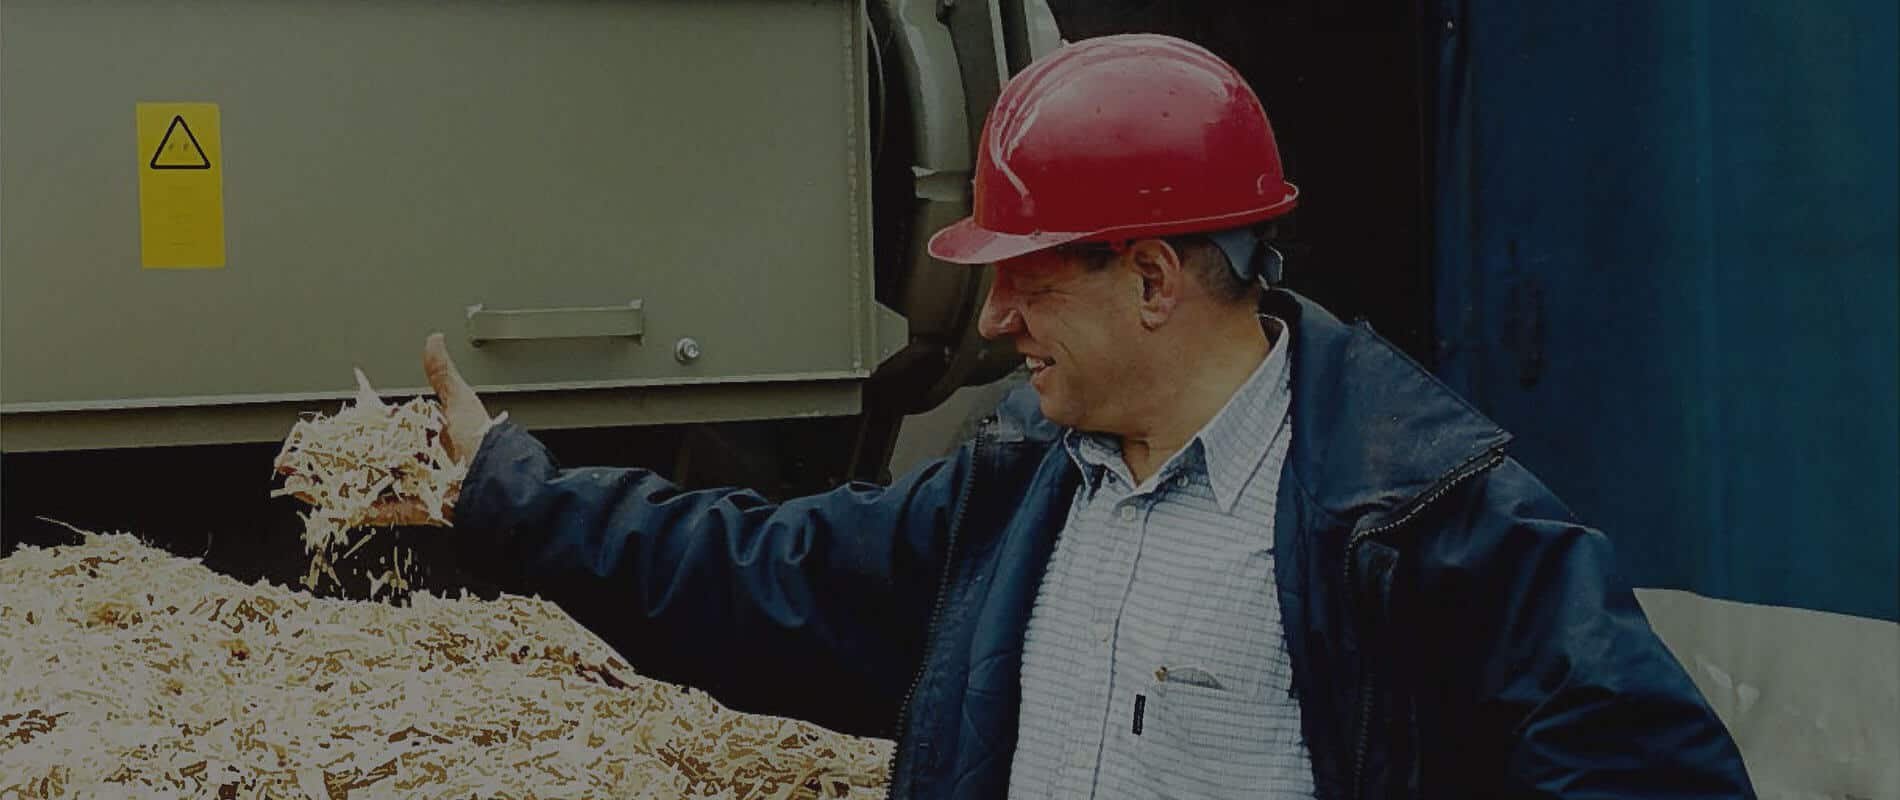 Man holding wood chips in his hand smiling with Scanhugger wood shredder in background